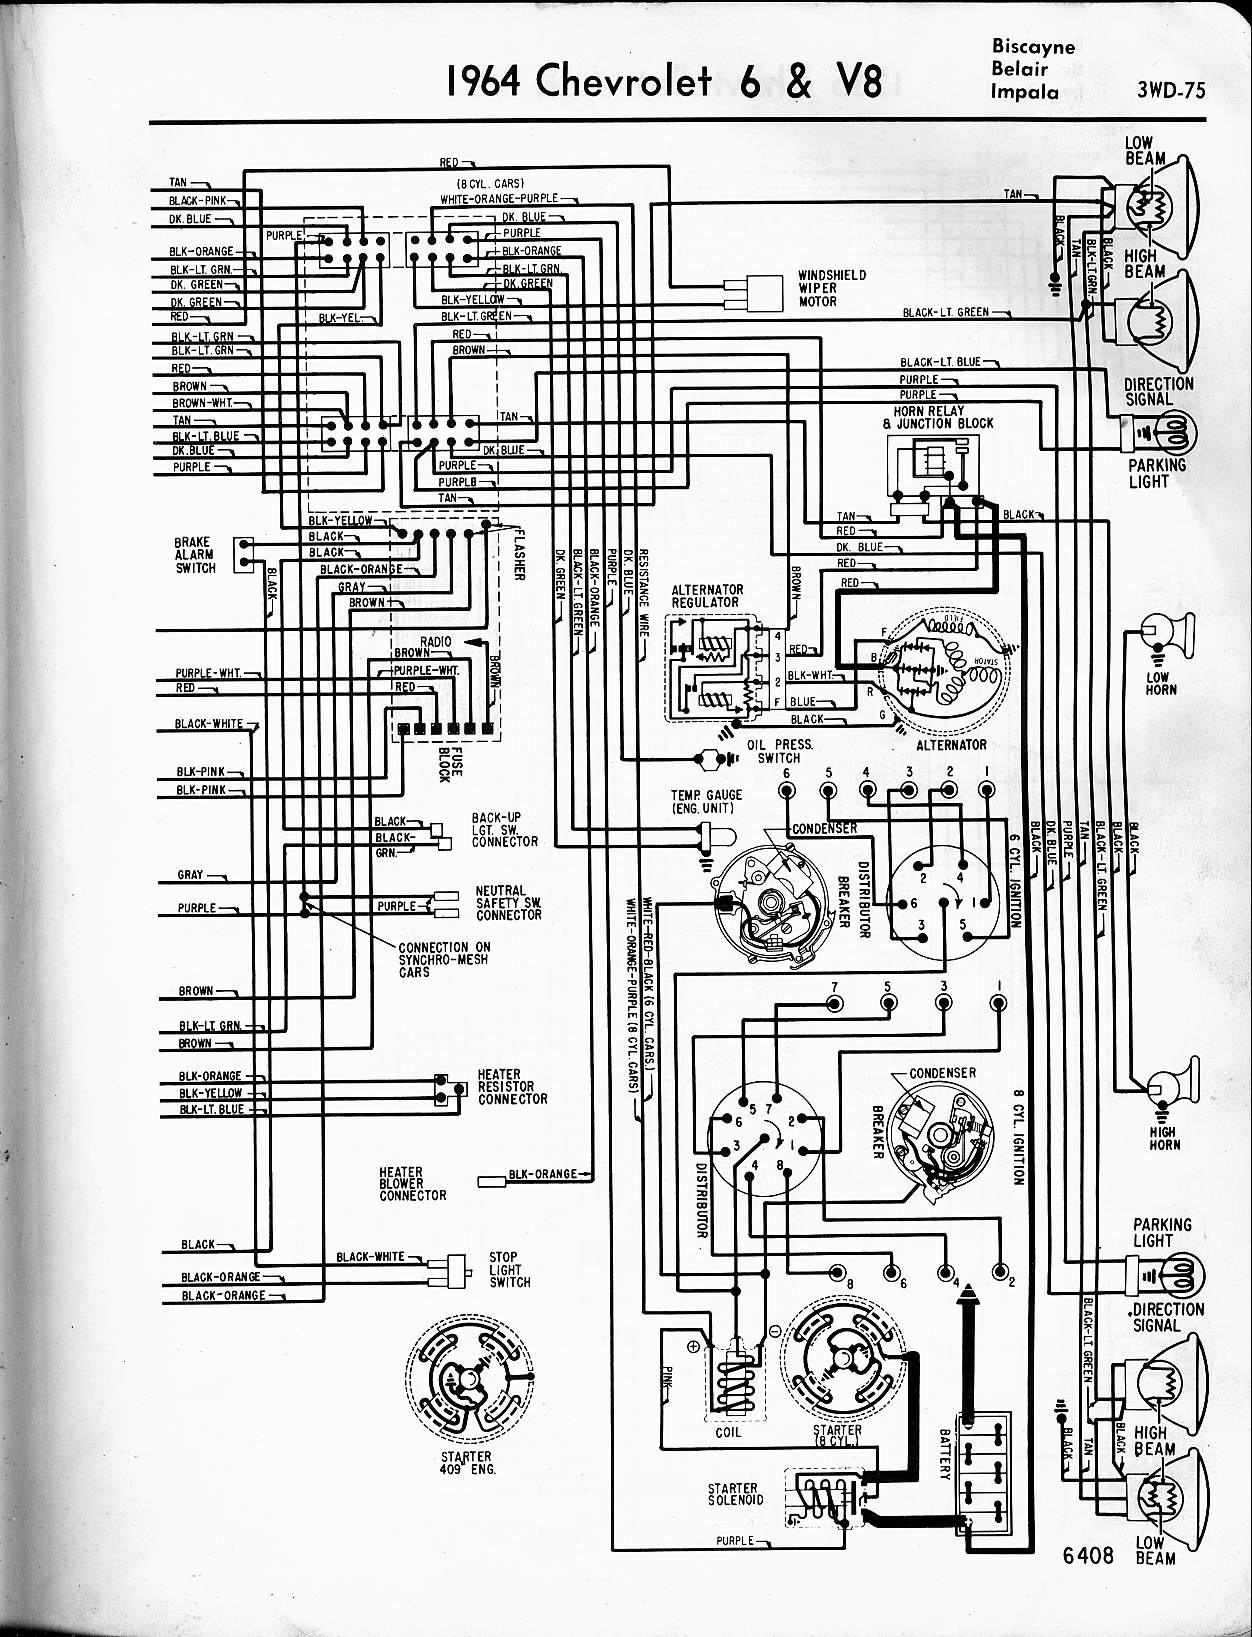 2002 Chevy S10 Fuse Box Wiring Library Diagram 2001 Truck 1964 Impala Panel Basic U2022 Rh Rnetcomputer Co 1991